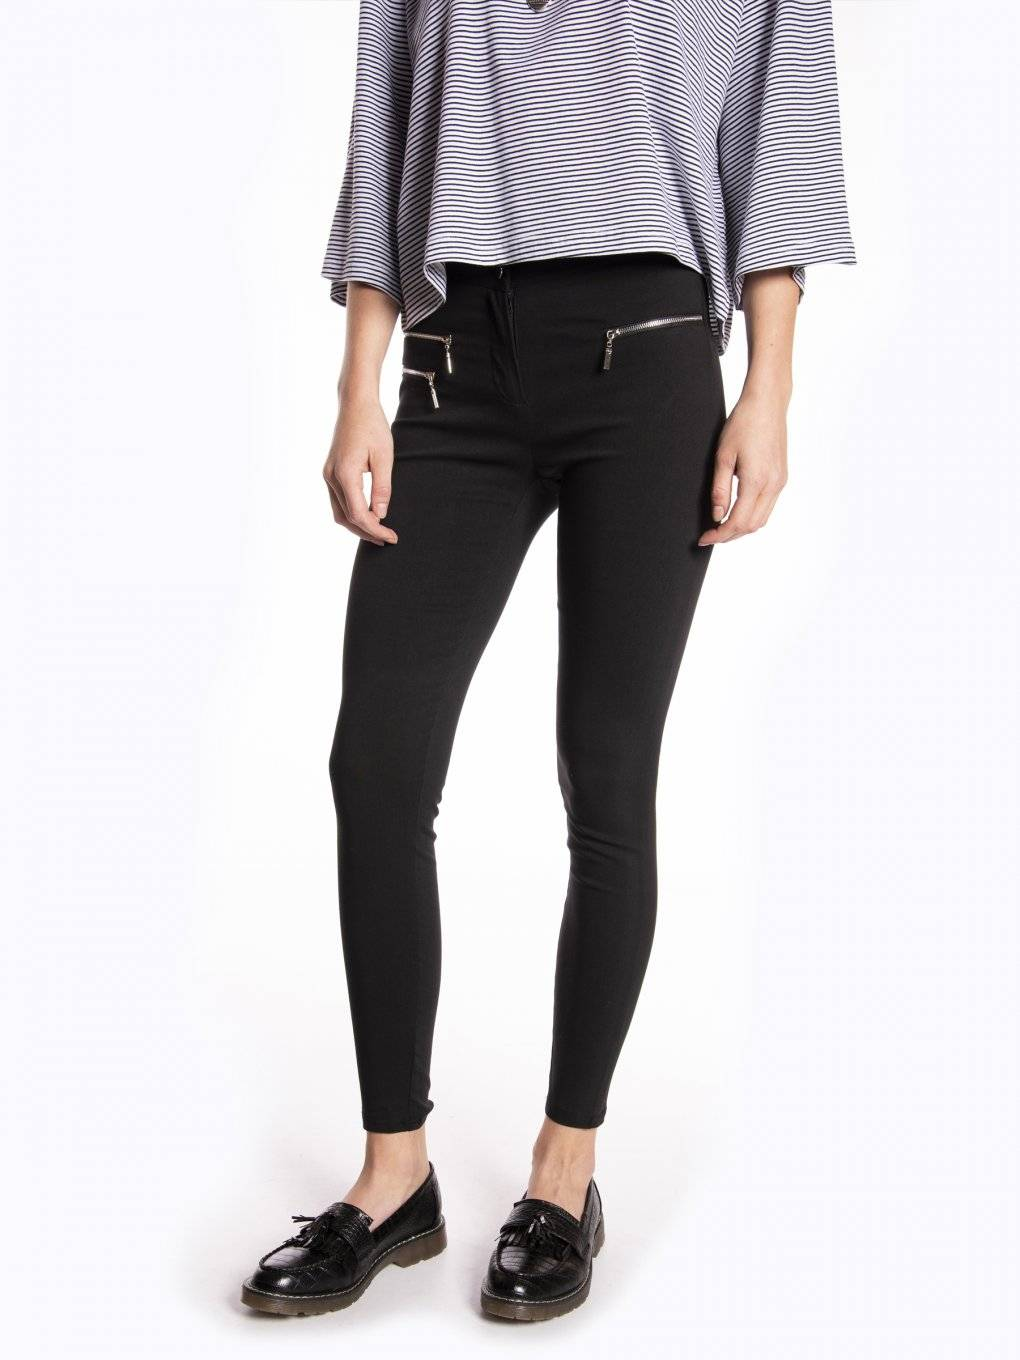 Elastic skinny trousers with shinny zippers